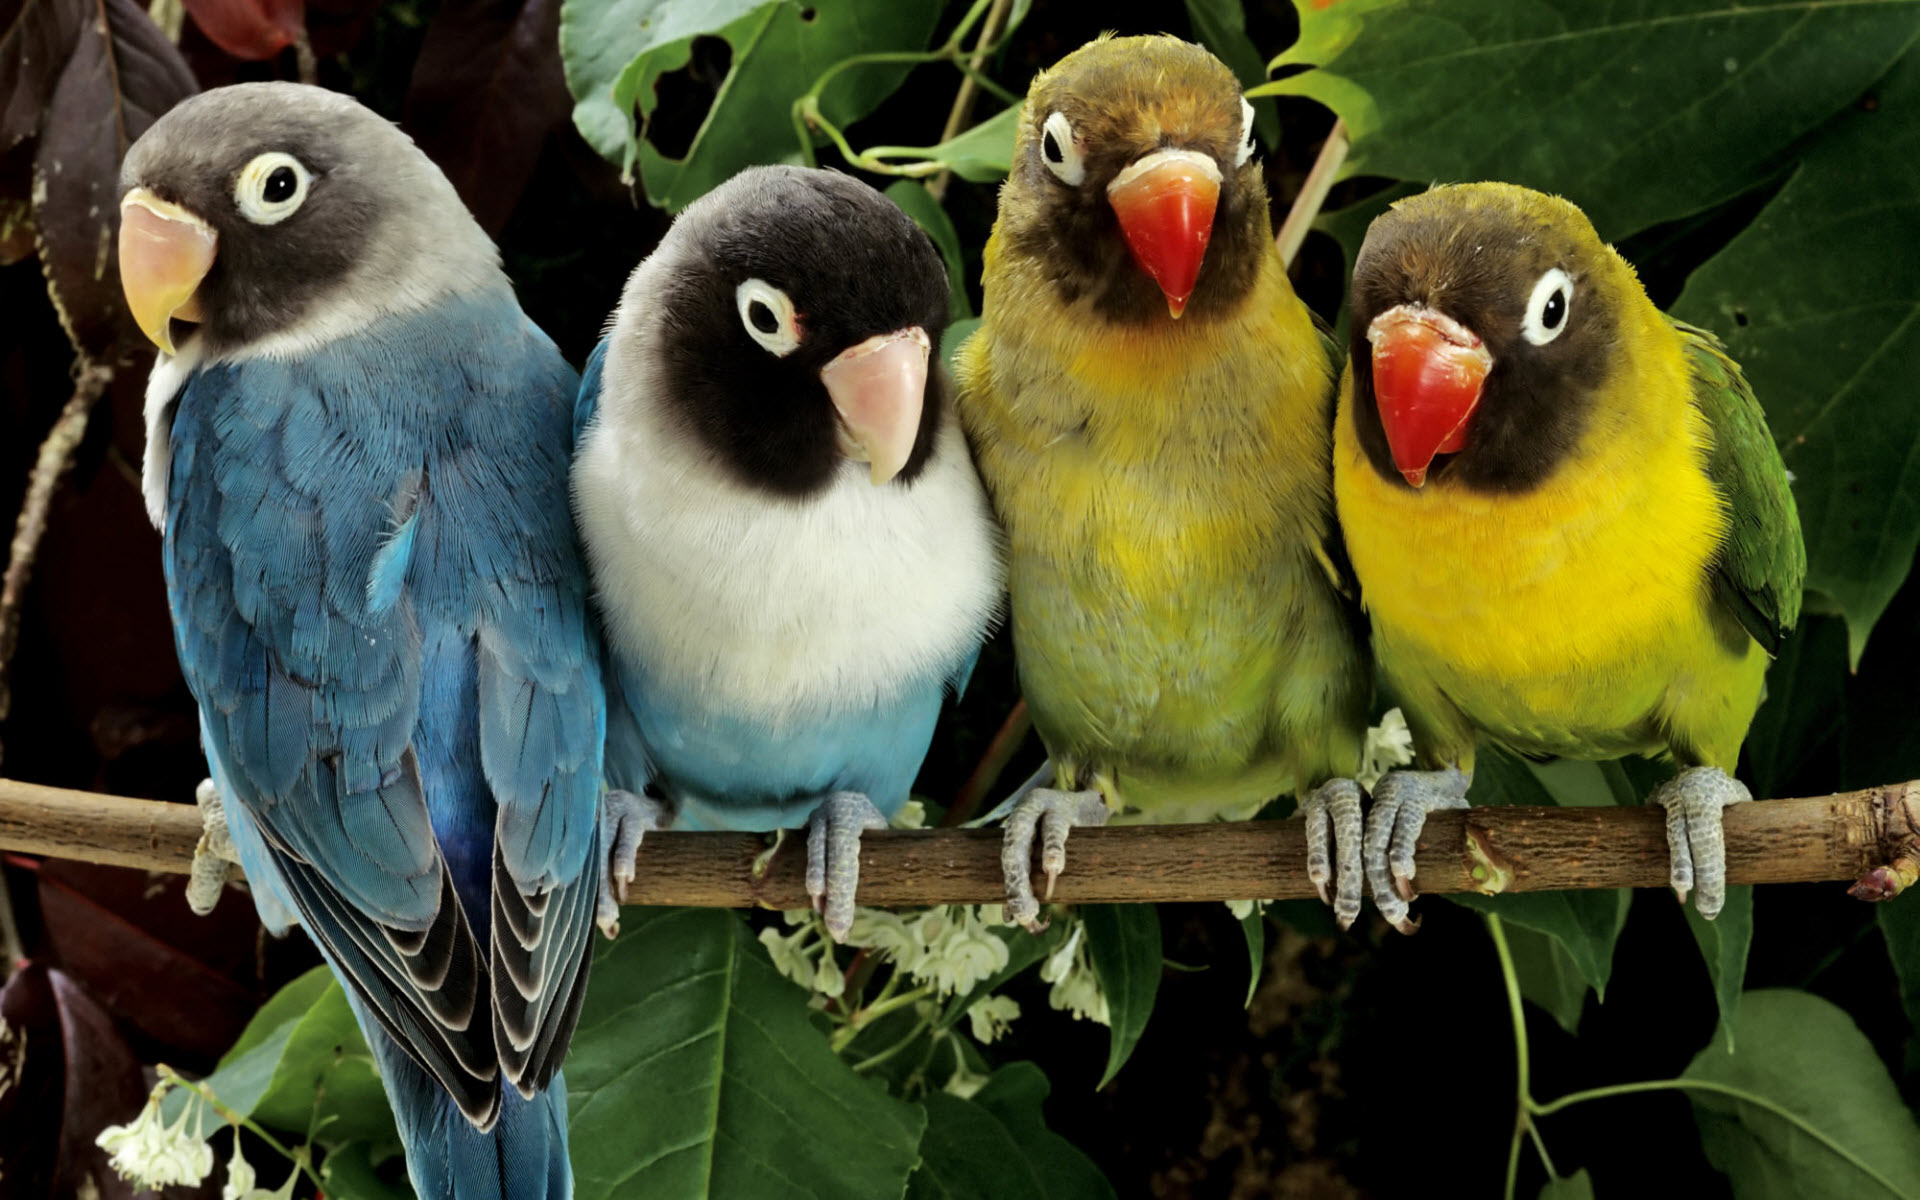 3D Love Birds 11 Hd Wallpaper - Hdlovewall com